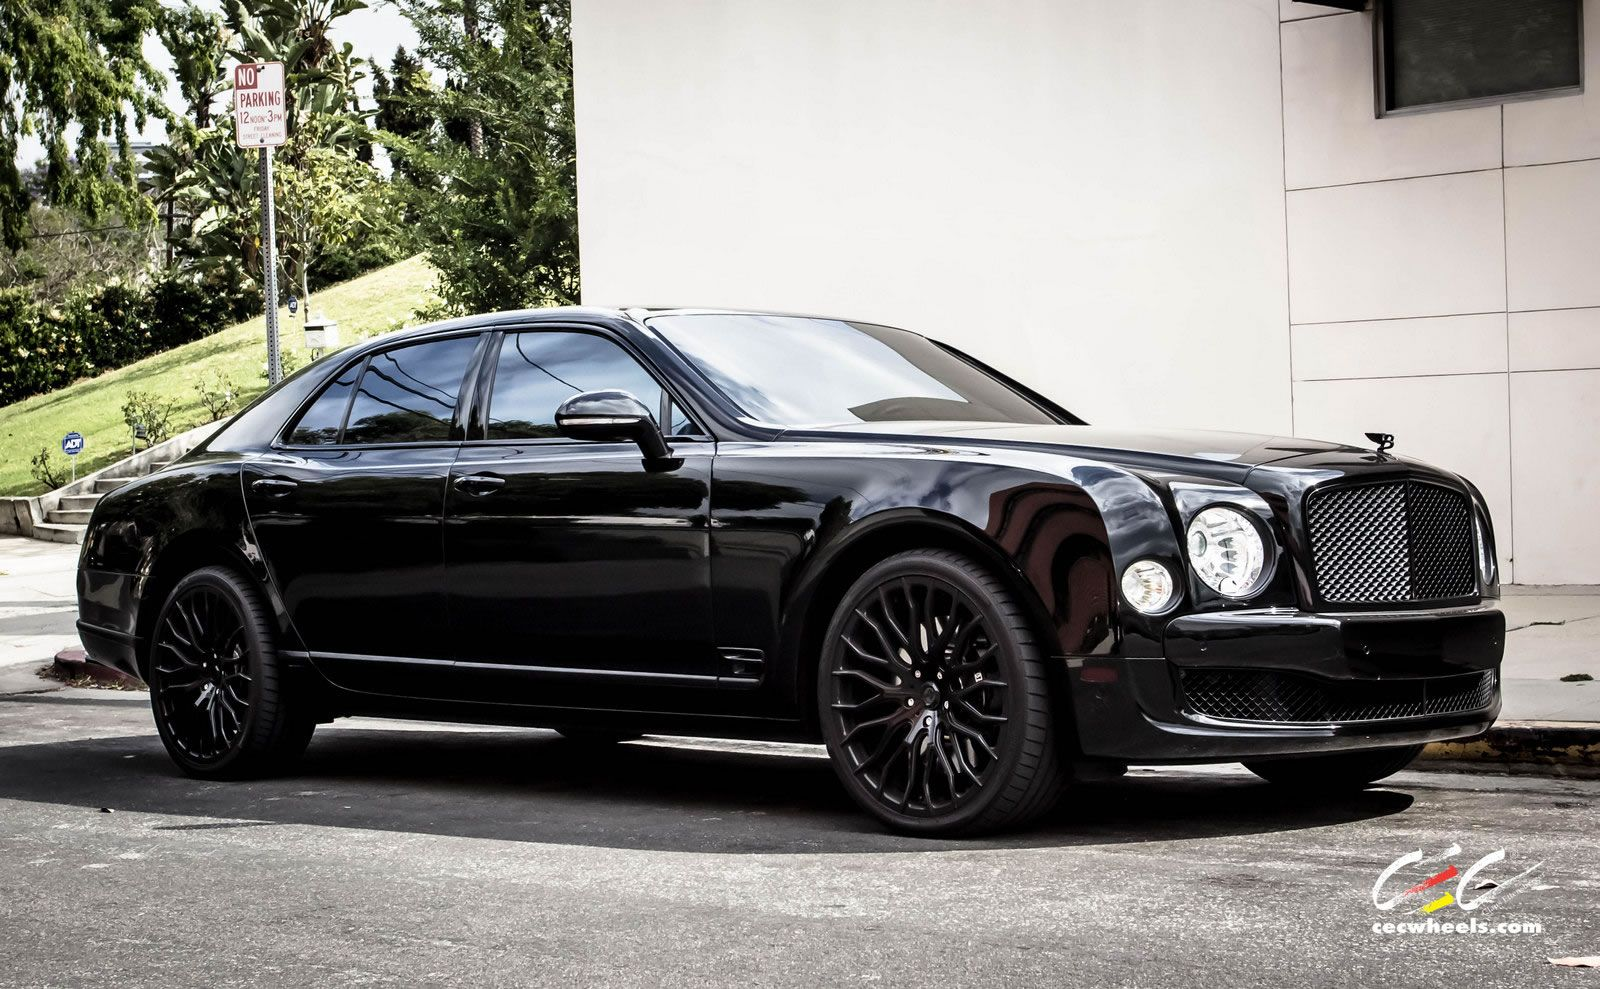 specs photos reviews mulsanne car price driver and bentley